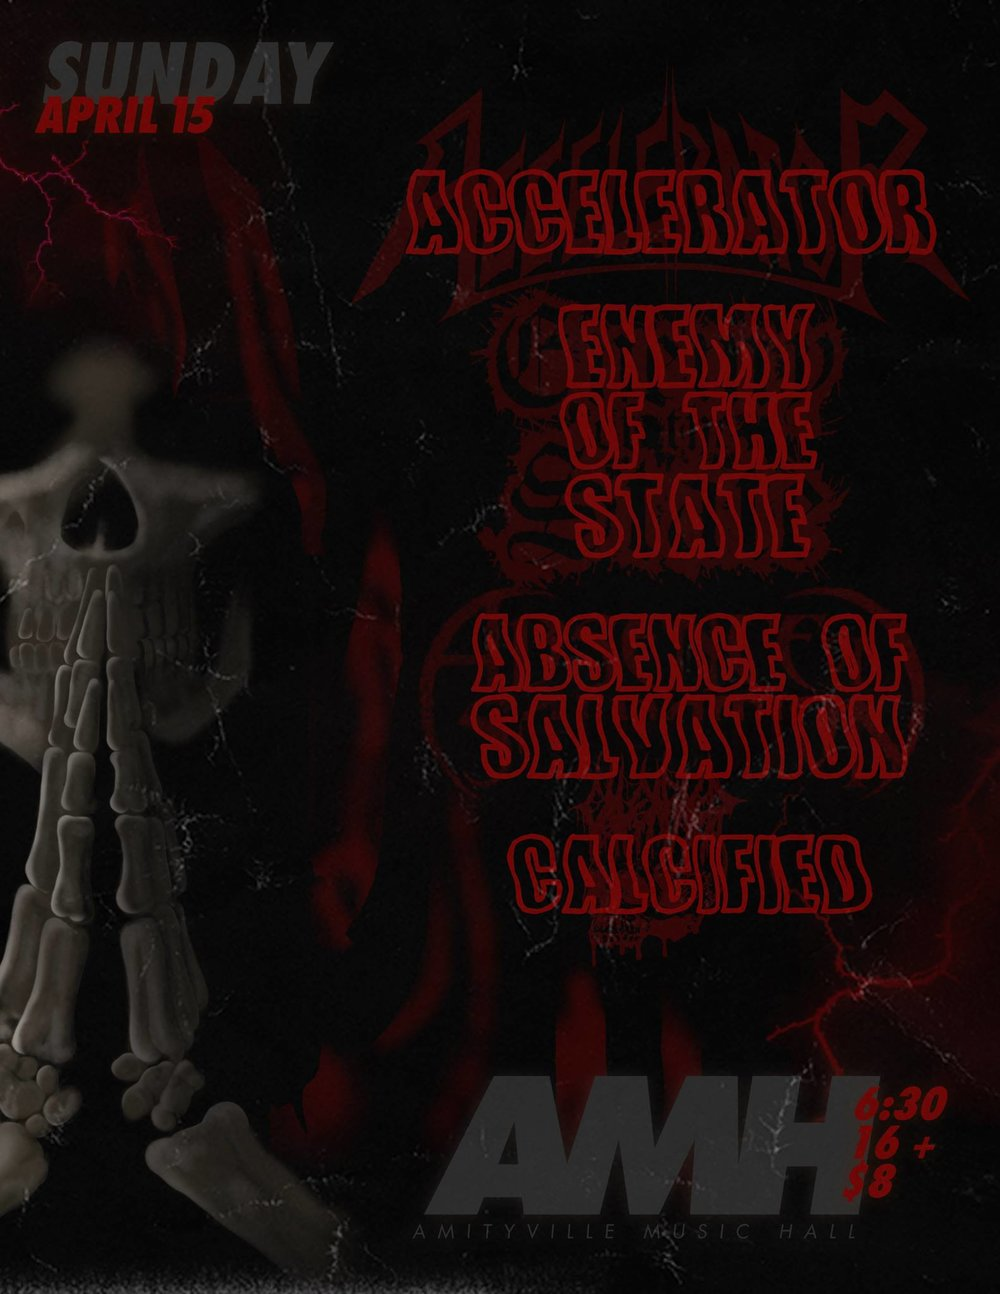 Accelerator - Enemy Of The State,Absence of Salvation, Calcified$8 ADV16+ w/ ID